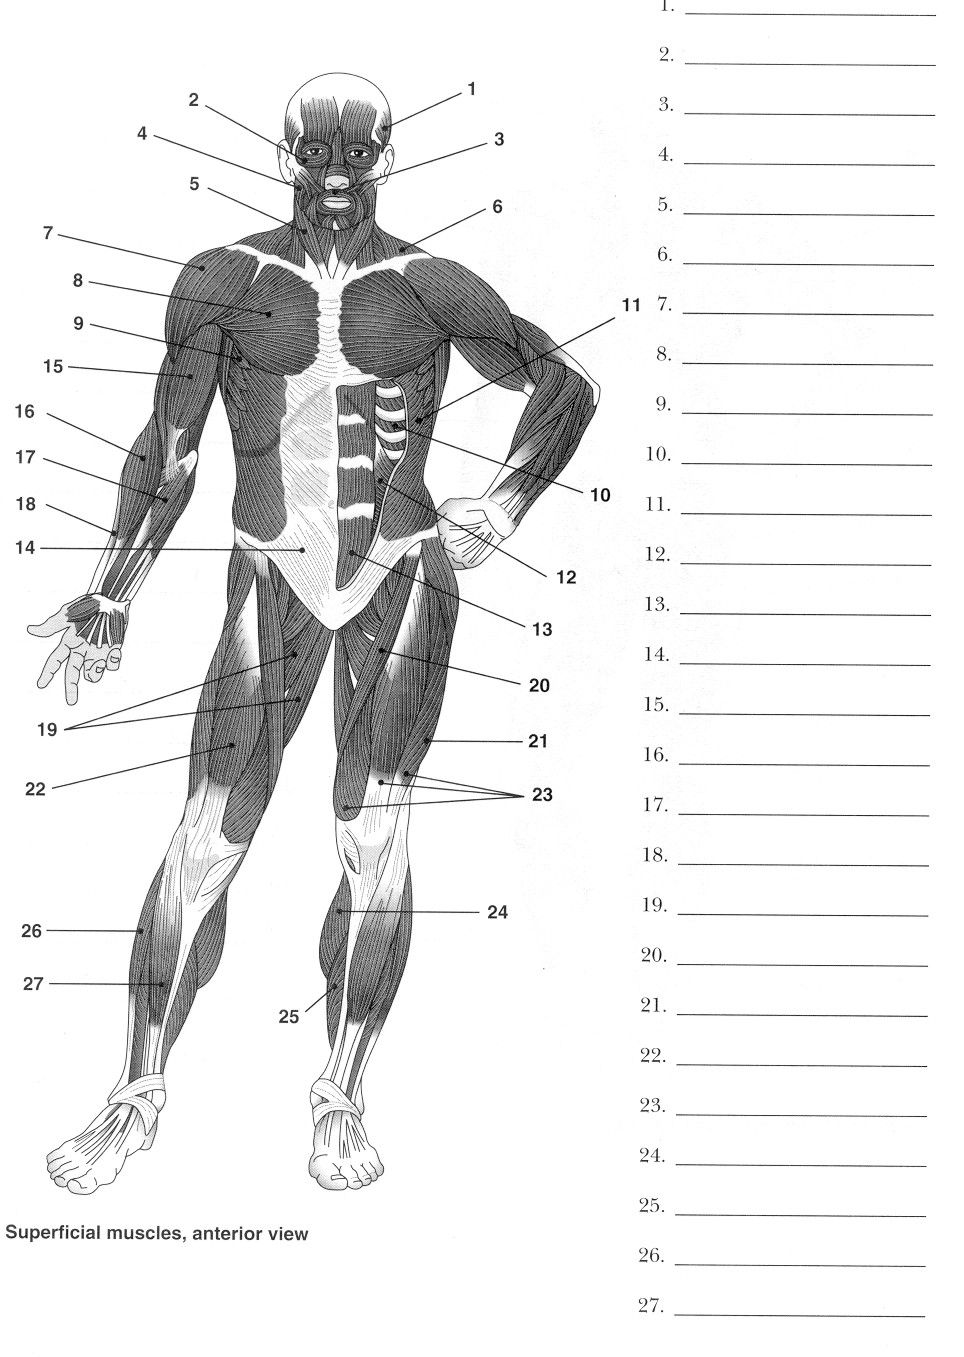 Printables Anatomy And Physiology Printable Worksheets anatomy labeling worksheets google search i heart 6 best images of printable muscle blank head and neck muscles diagram muscular system worksheet labe